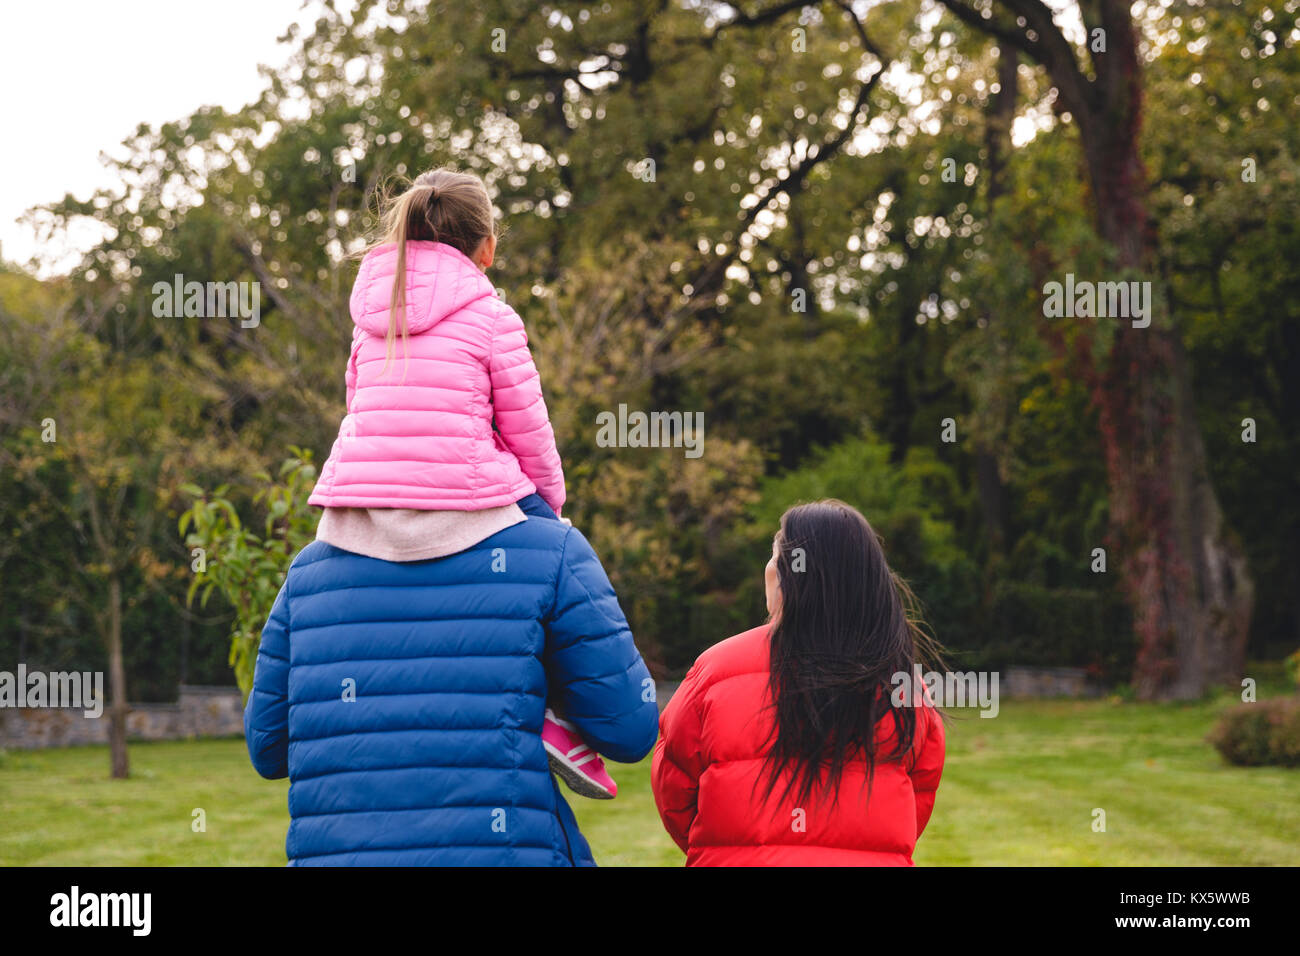 Back view of a young family spending time together outdoors, dad giving his daughter a piggyback ride - Stock Image